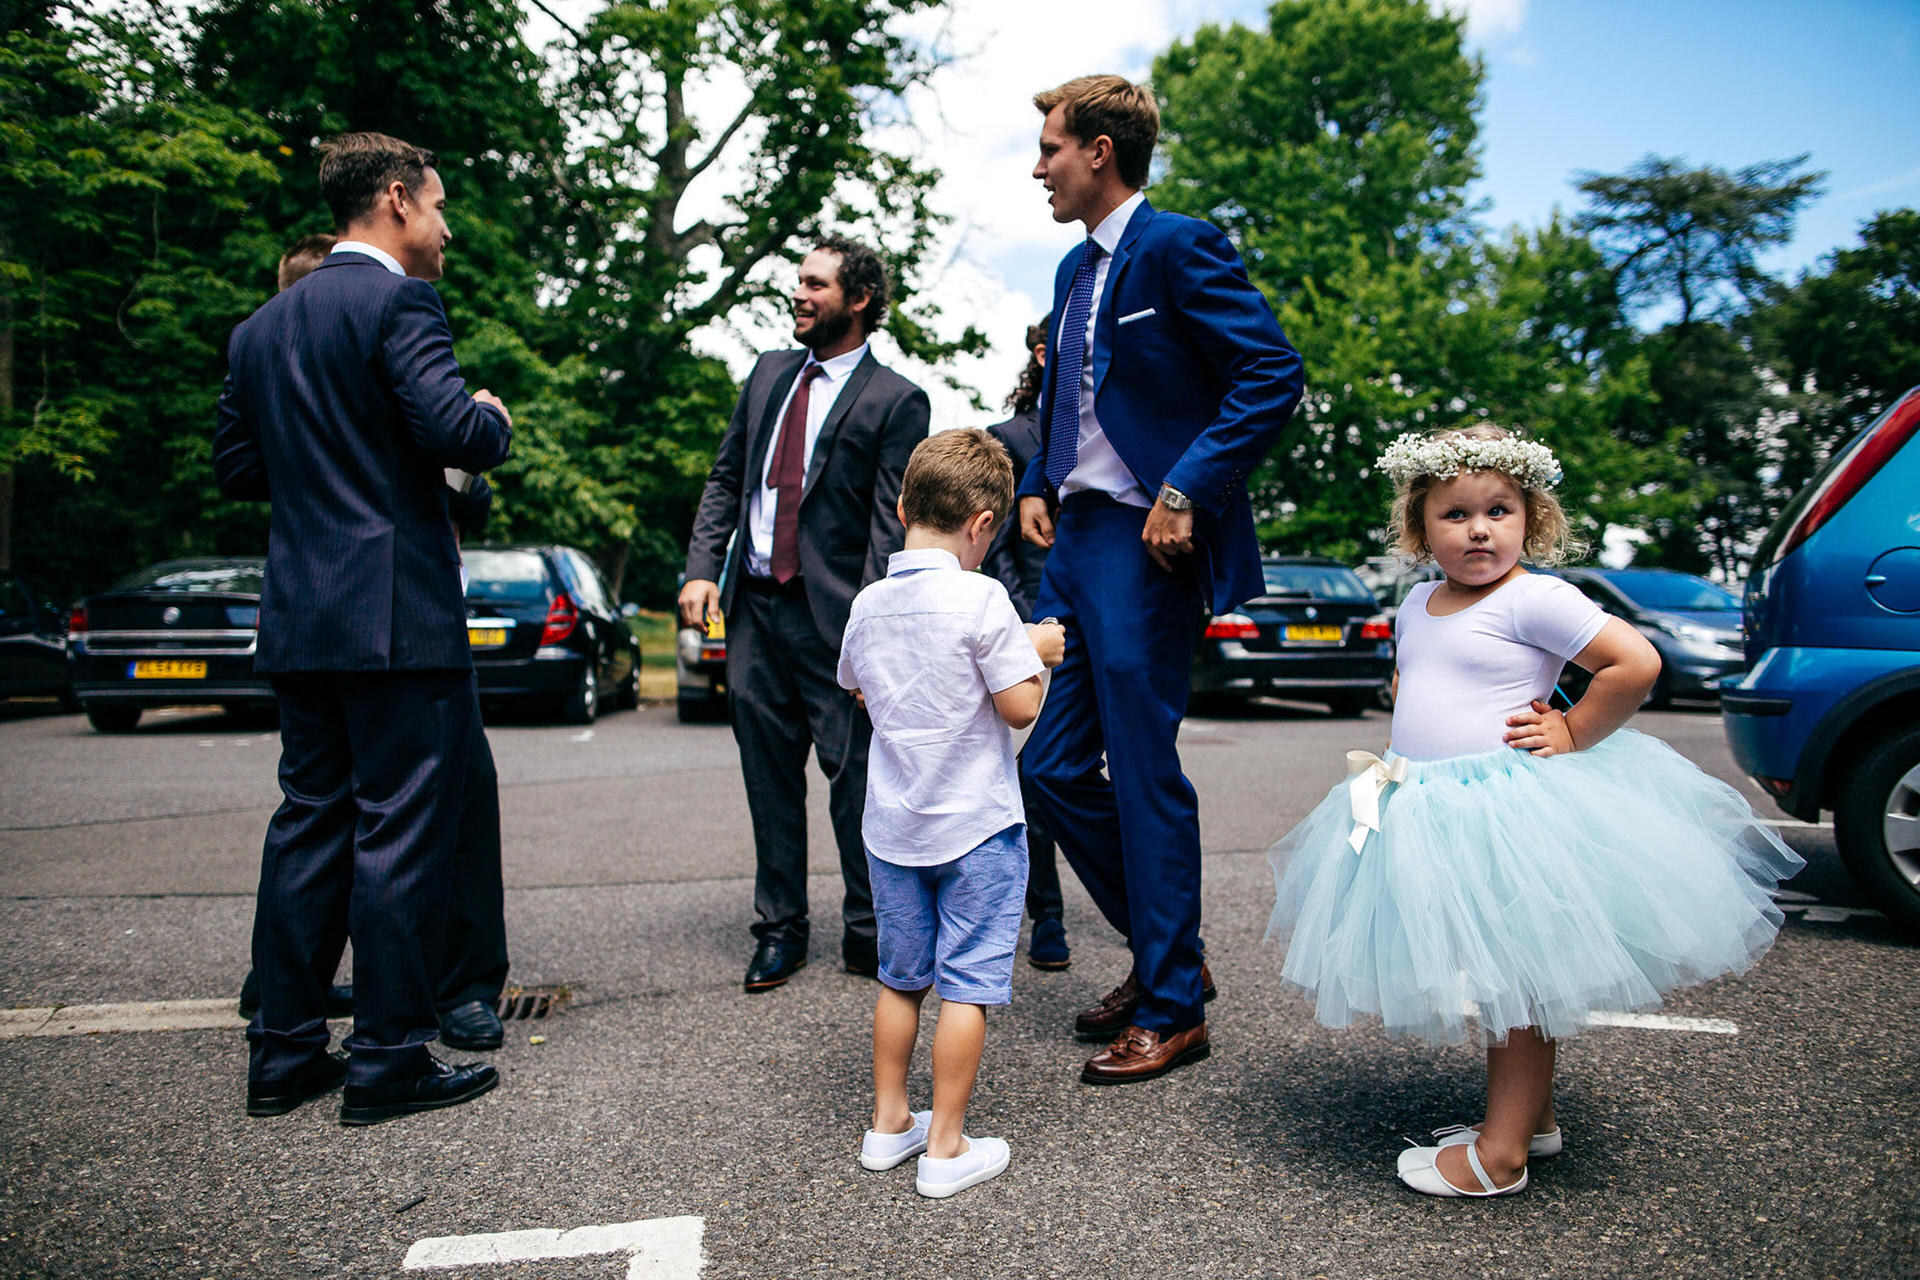 Flowergirl waits outside church in car park with hands on her hips looking straight down the camera.